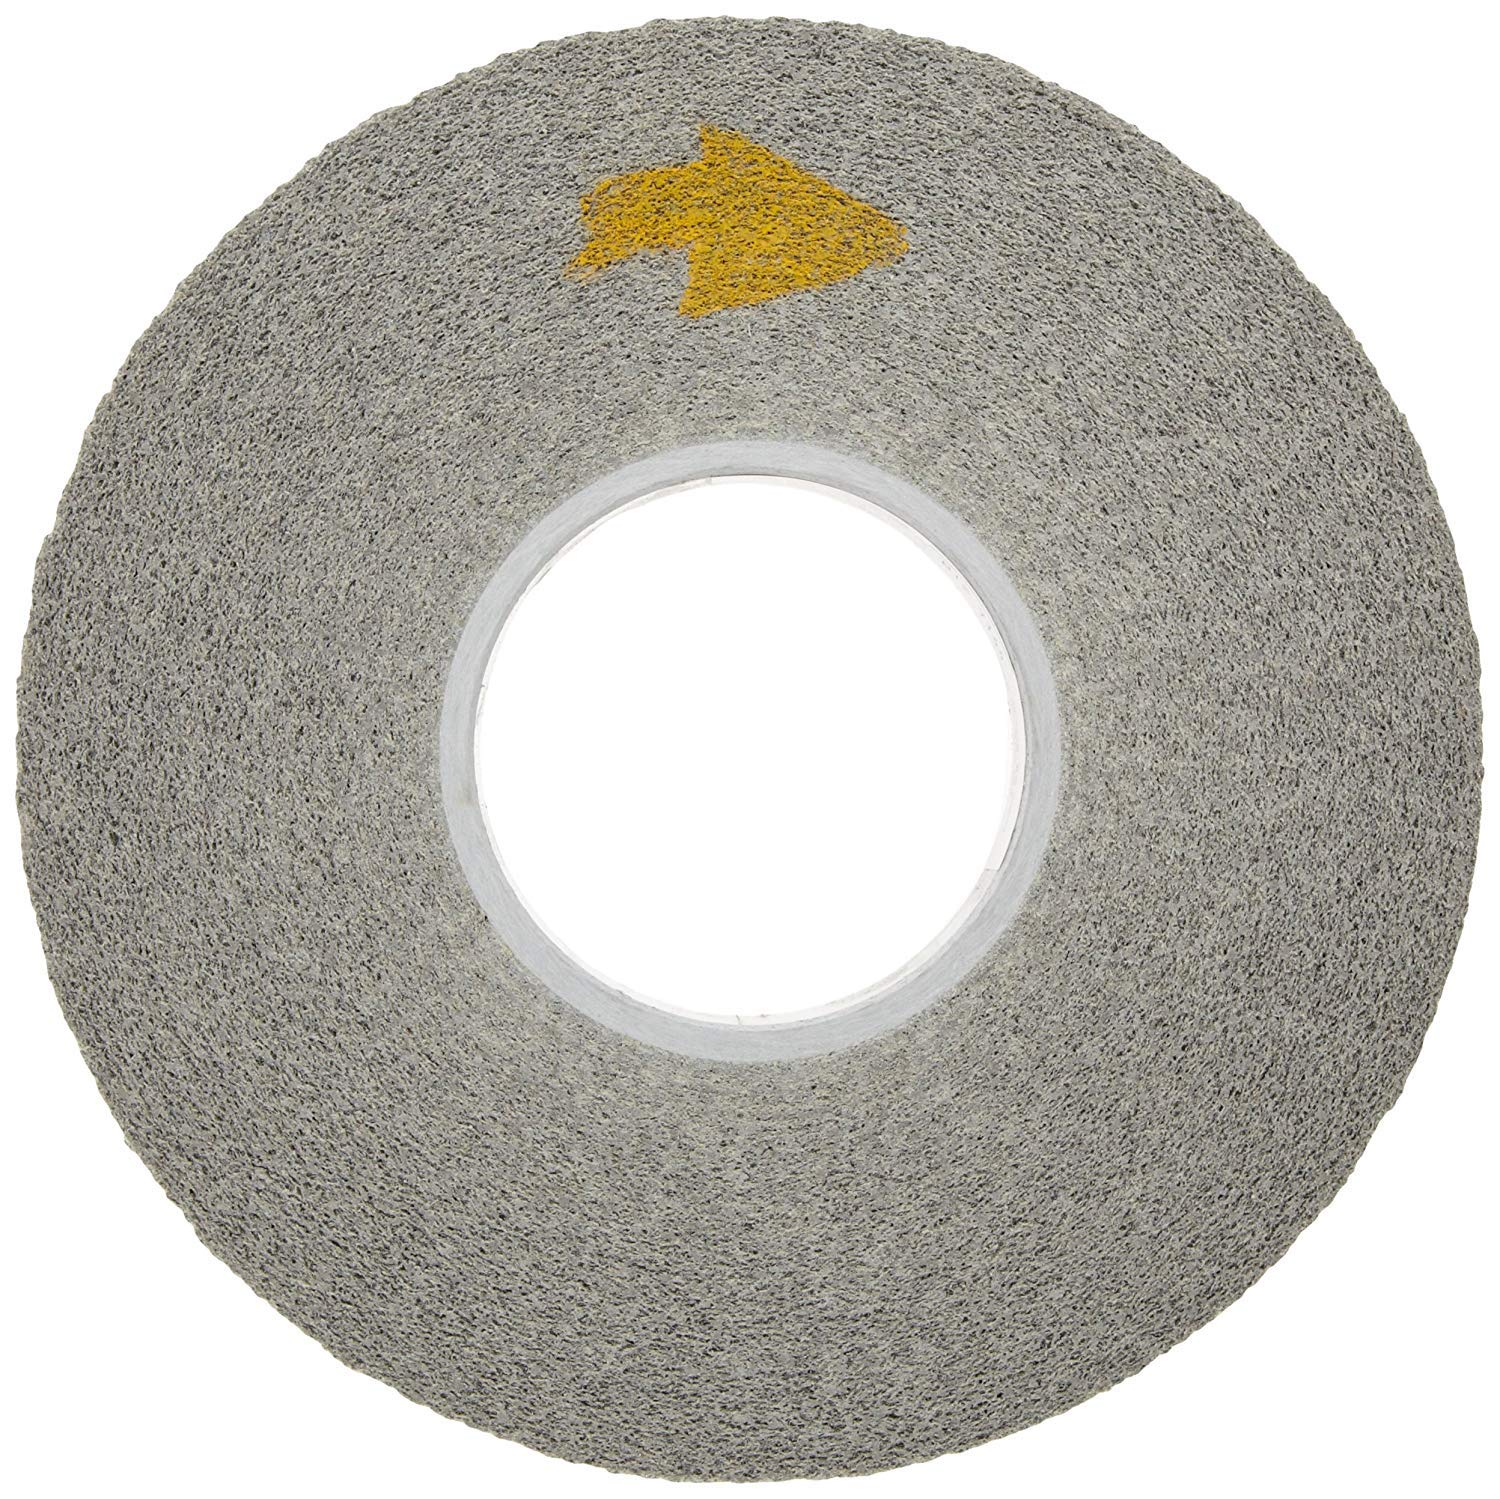 Light Deburring Non Woven convolute Wheel Silicon Carbide LD 12X1X5 7S FINE,1 Pack